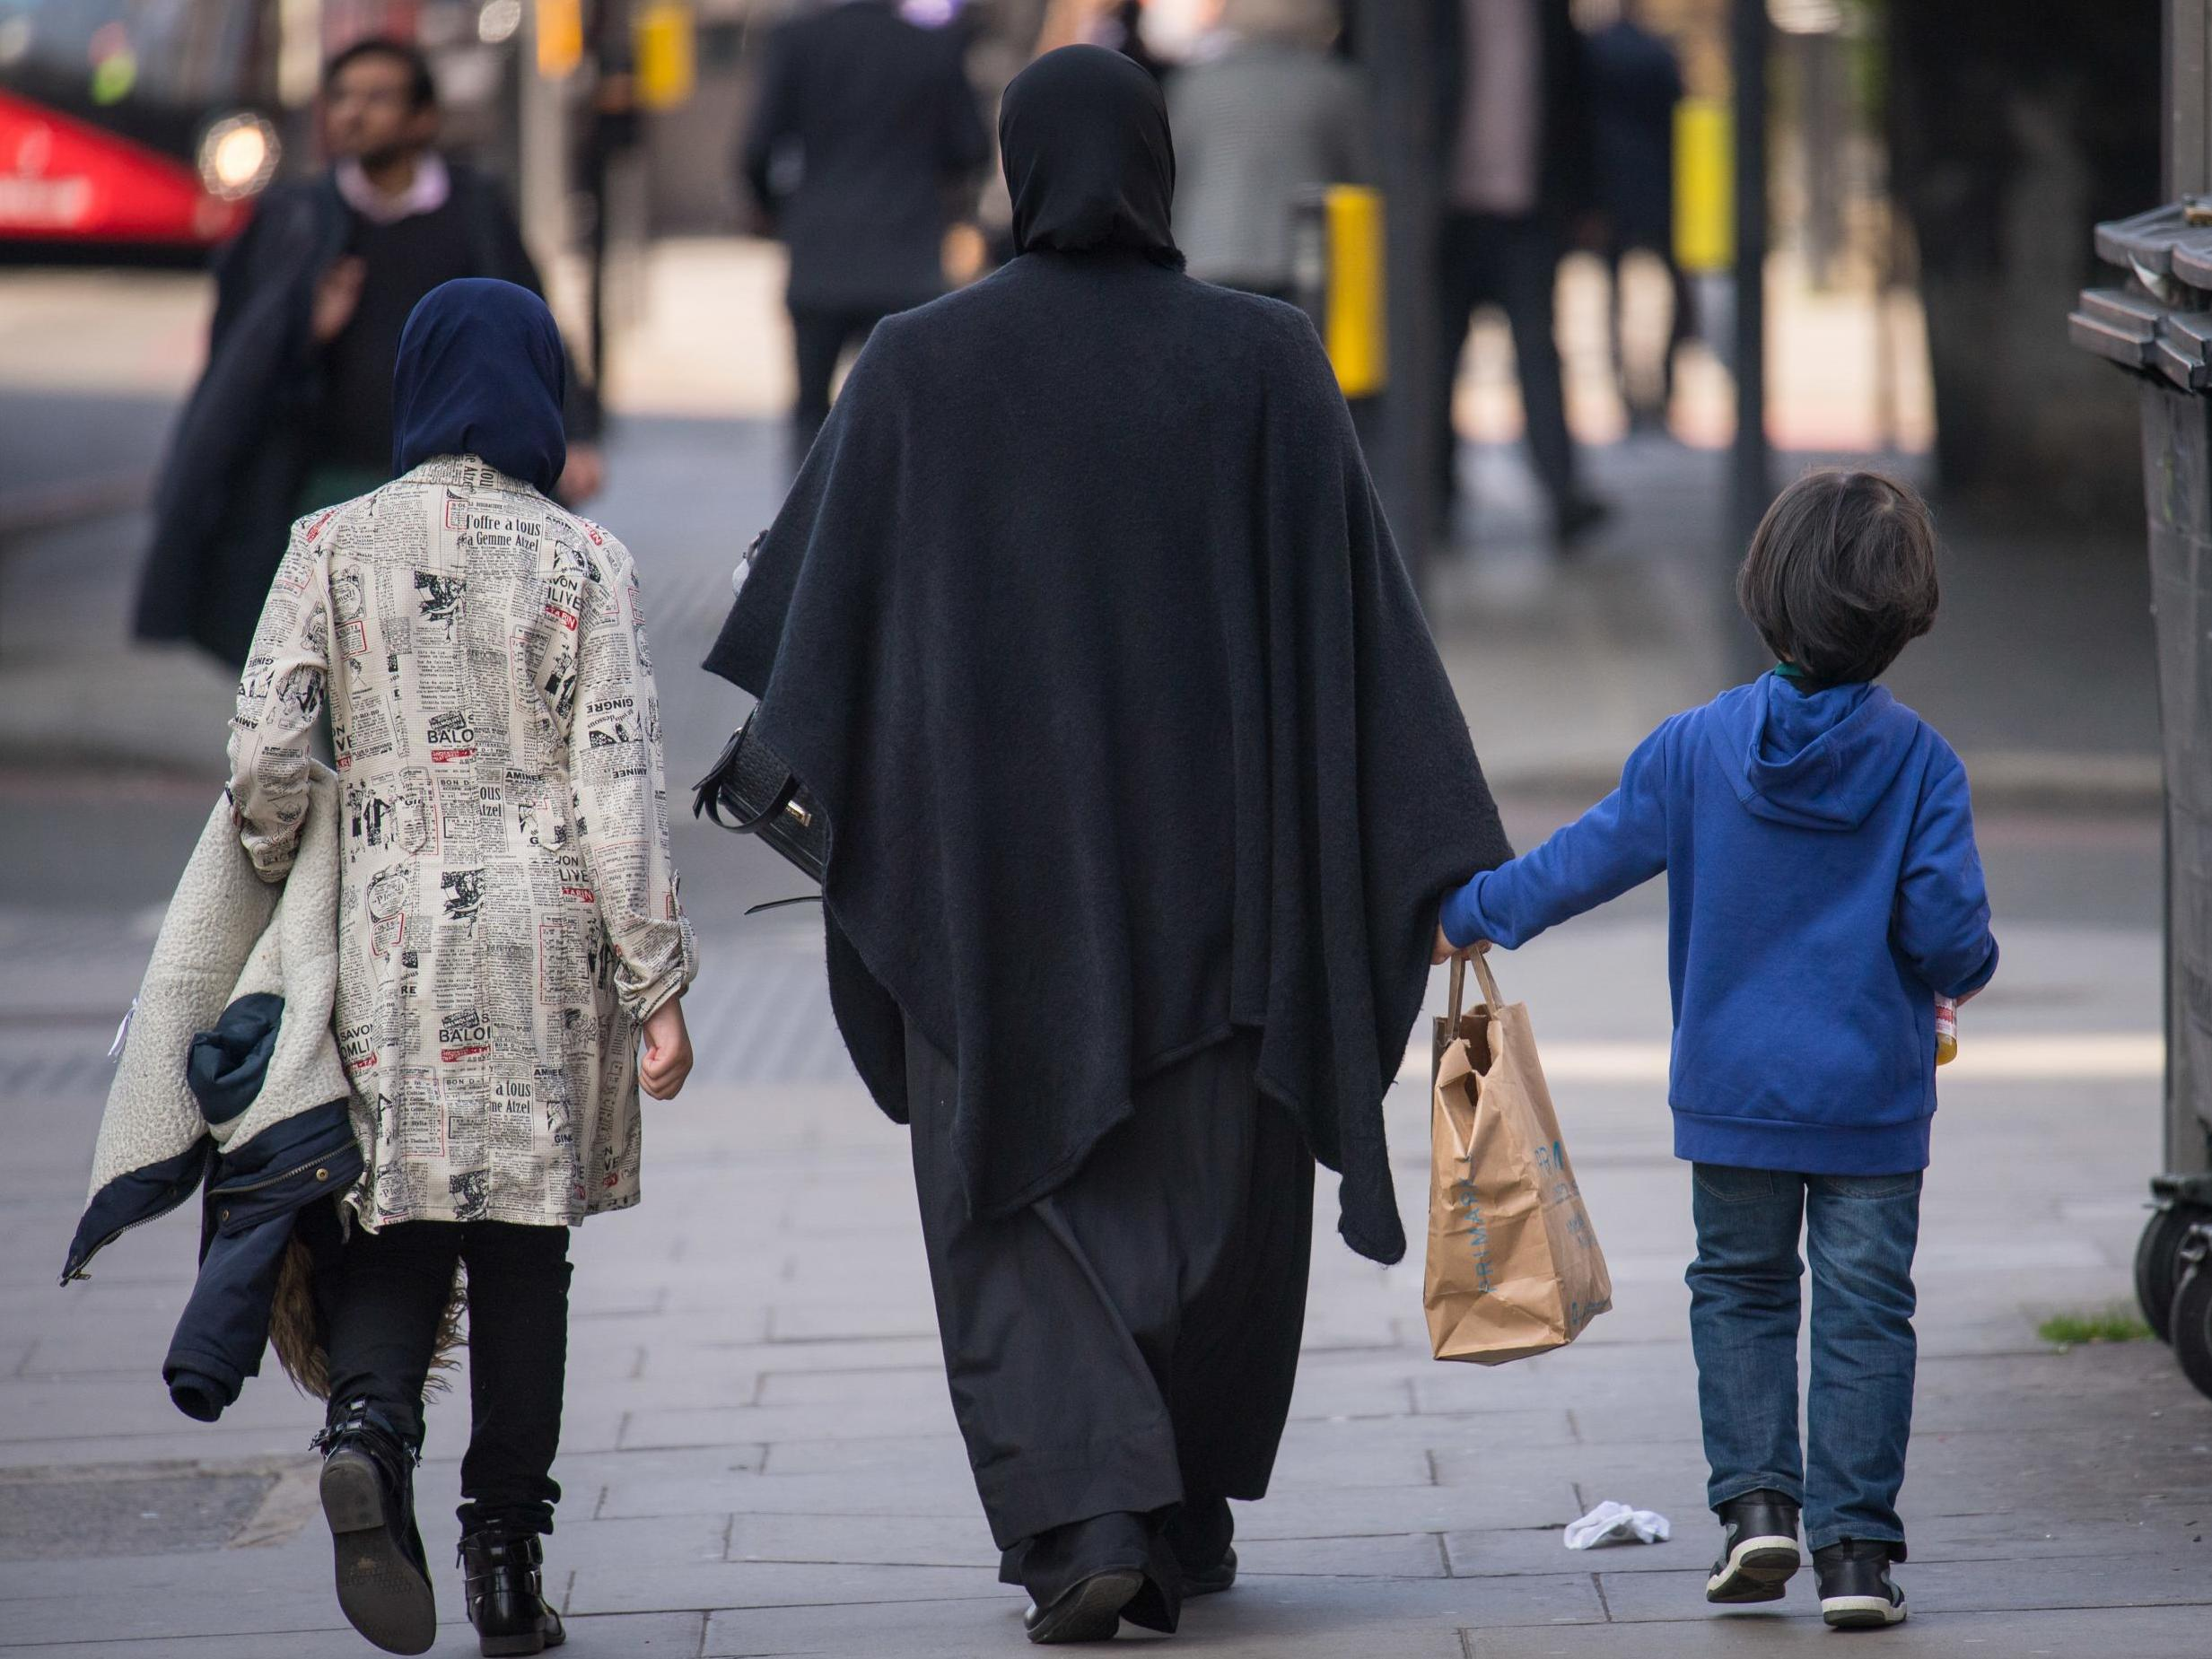 Opinion: An exodus of British Muslims is happening right under our noses